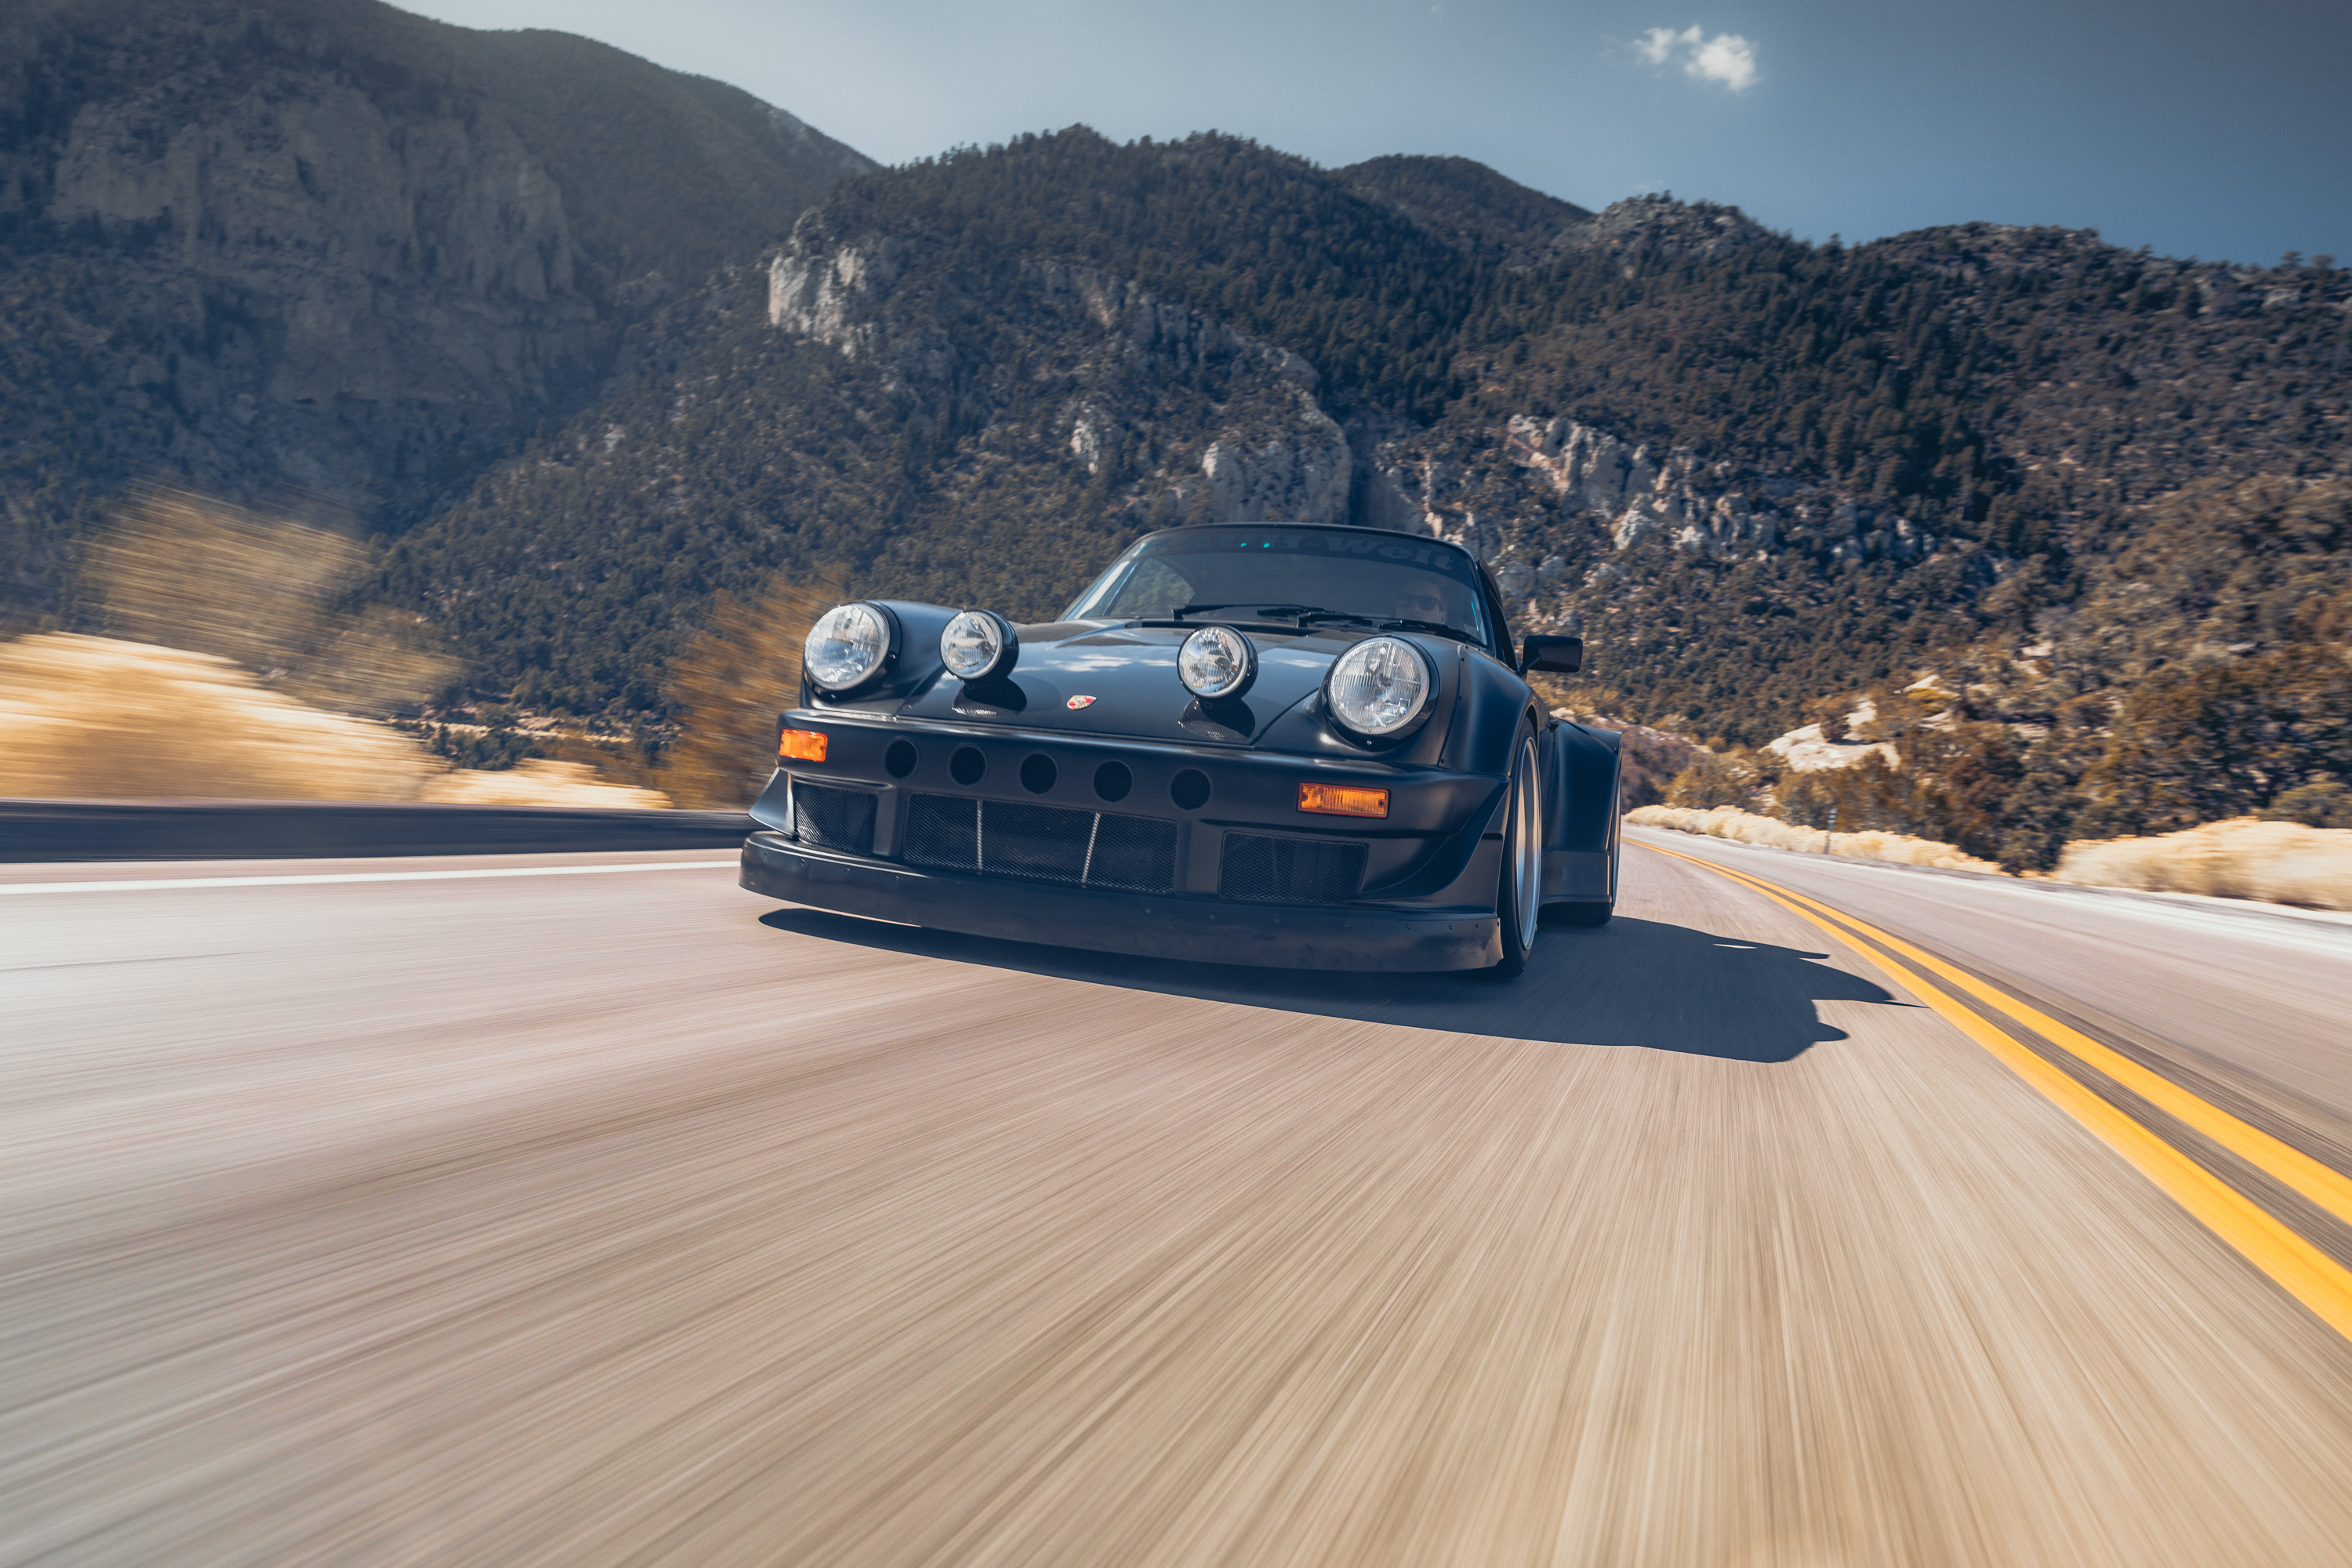 Front end shot of the Need for Speed Porsche 964 in the canyons of Nevada